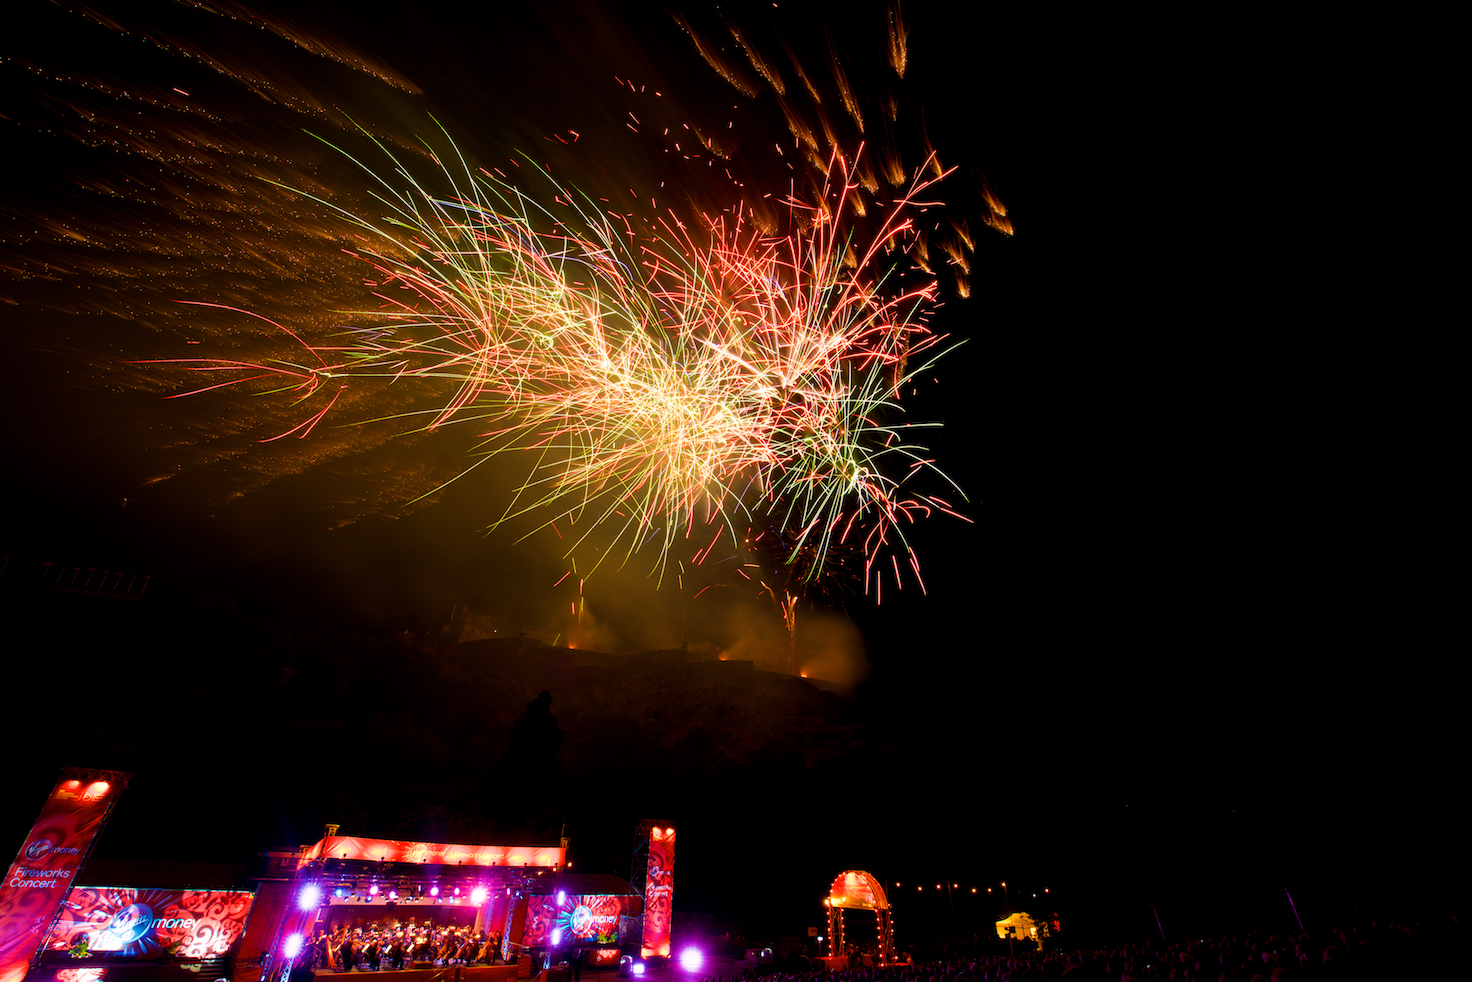 virgin-money-fireworks-concert-edinburgh-castleedinburgh-international-festival-edinburgh-castle-29th-august-2016-8